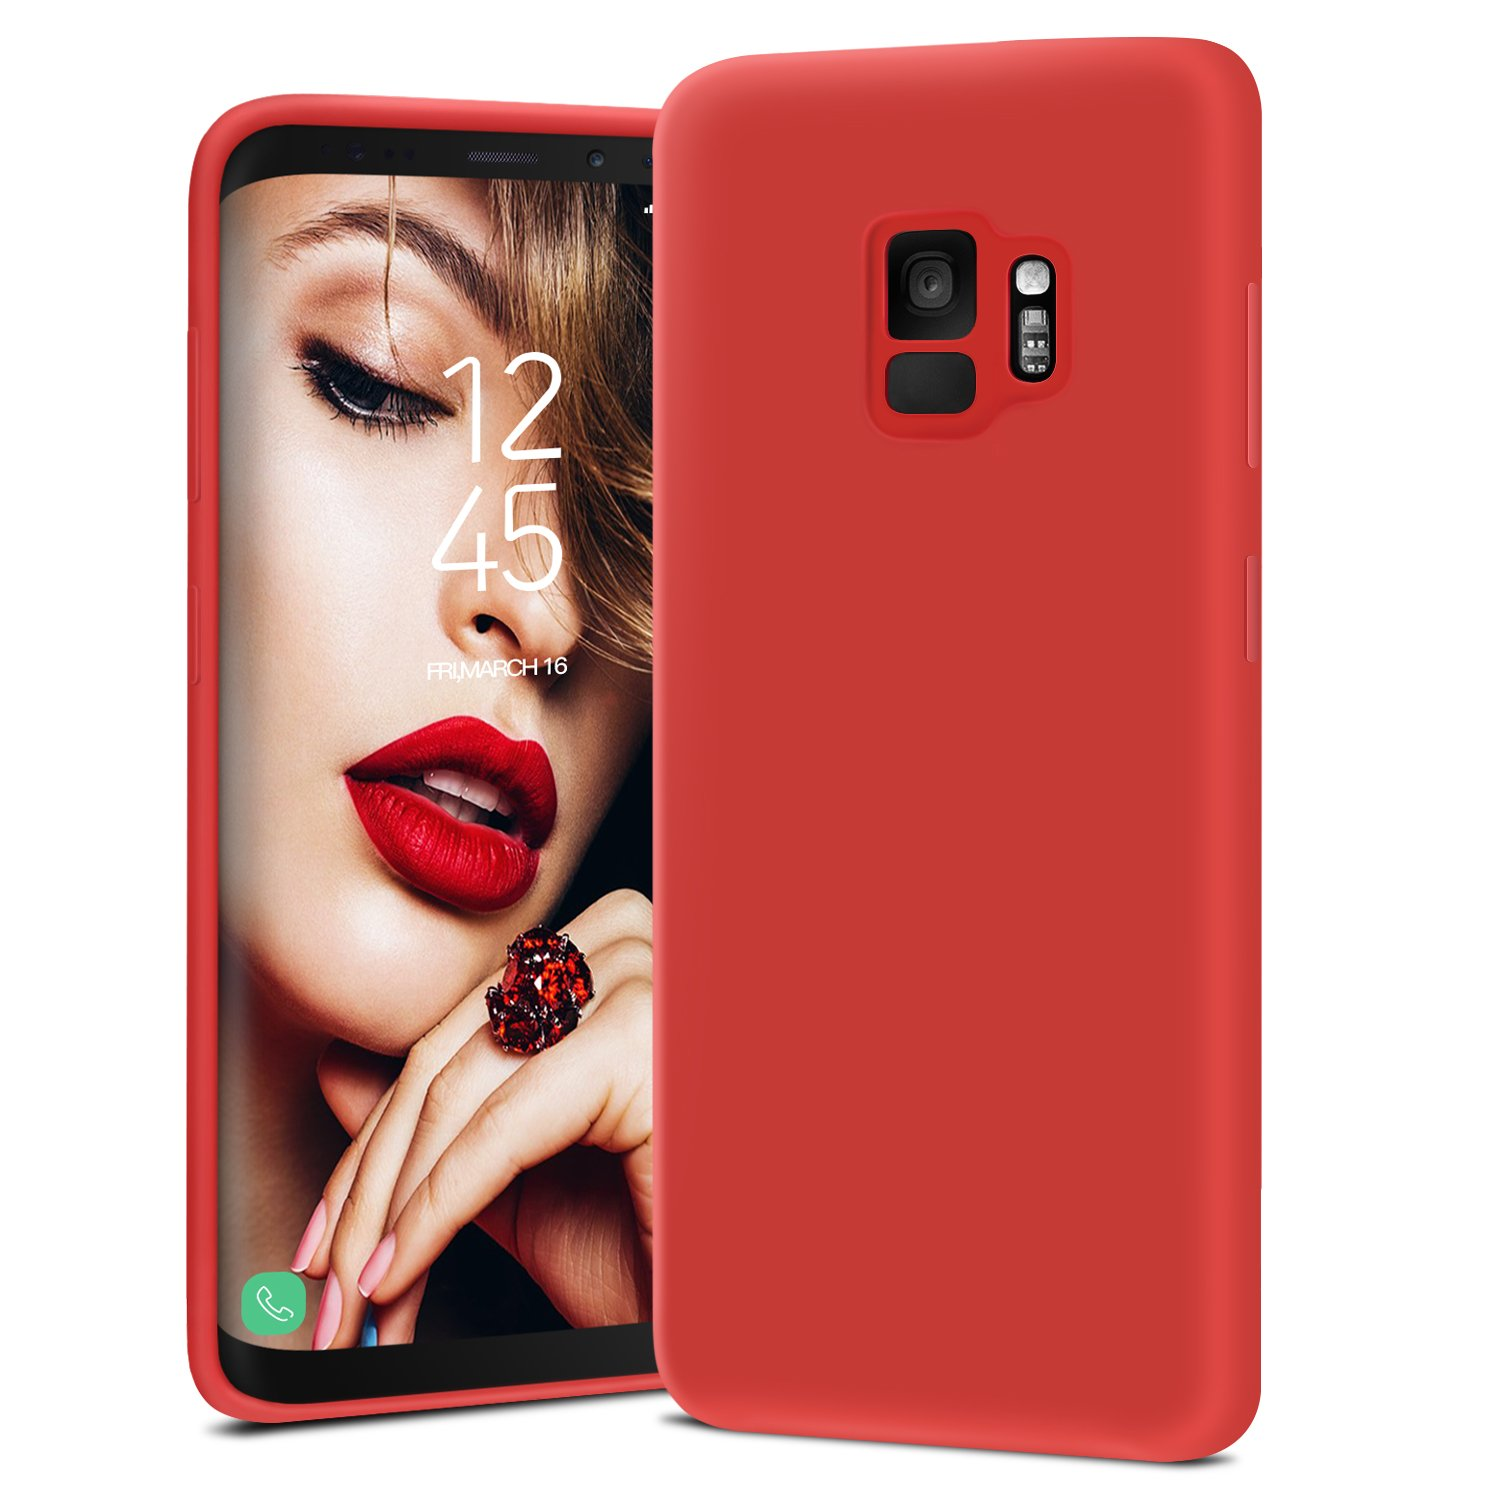 JASBON Coque Samsung Galaxy S9, Coque Silicone Liquide Anti-rayure,  Housse Protection Silicone Anti-choc Gel Case pour Samsung Galaxy S9 – Rouge